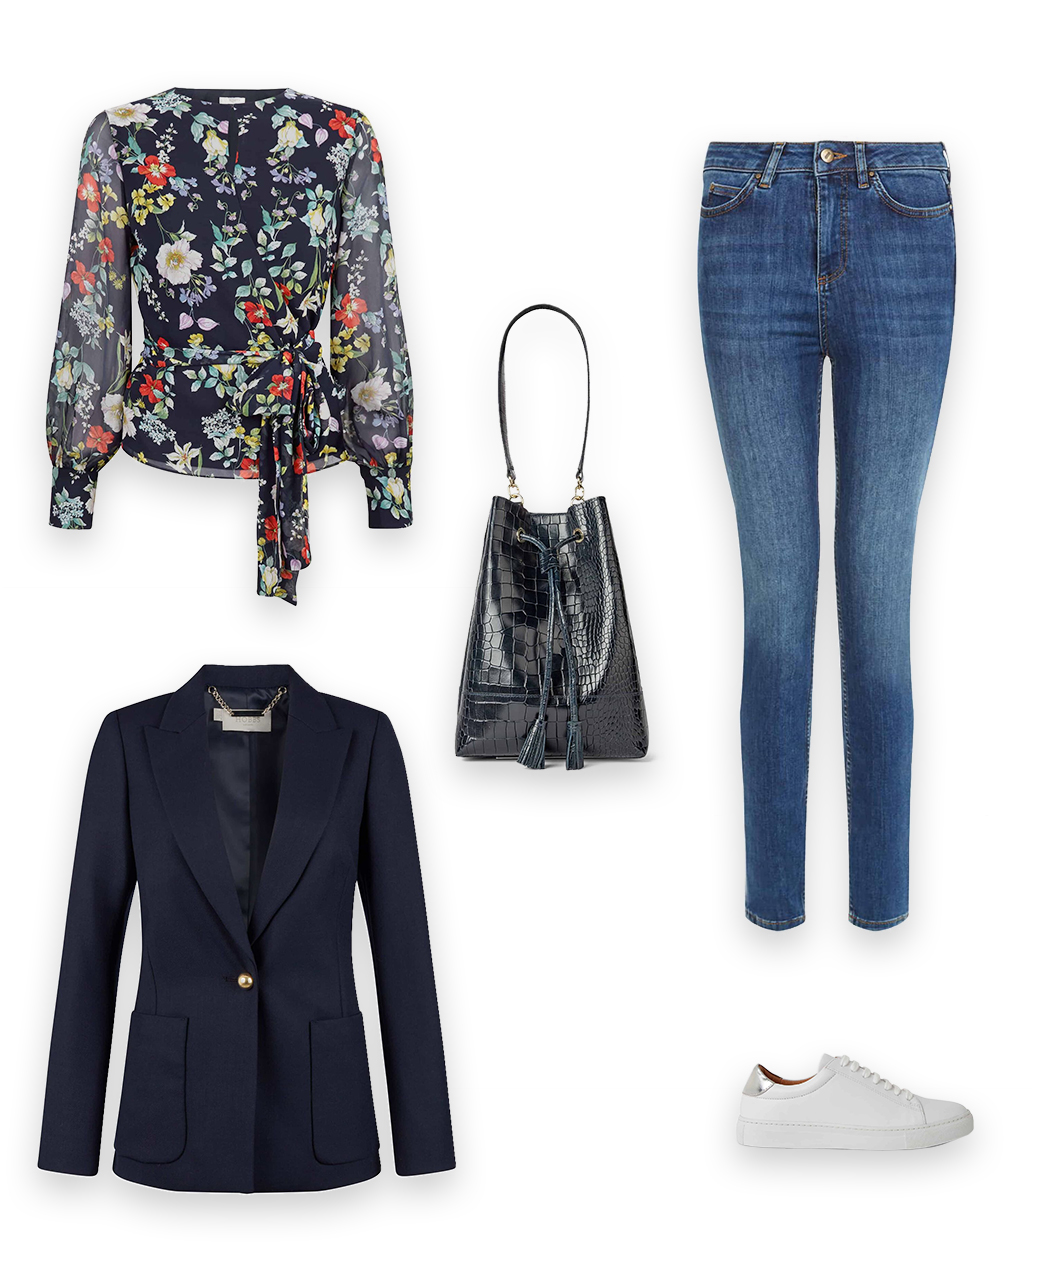 The Hobbs Everyday Casual Look, styling a the meadow blouse, a navy blue floral print wrap blouse with a dark denim slim jeans, a navy blazer with white leather trainer and navy leather bucket handbag